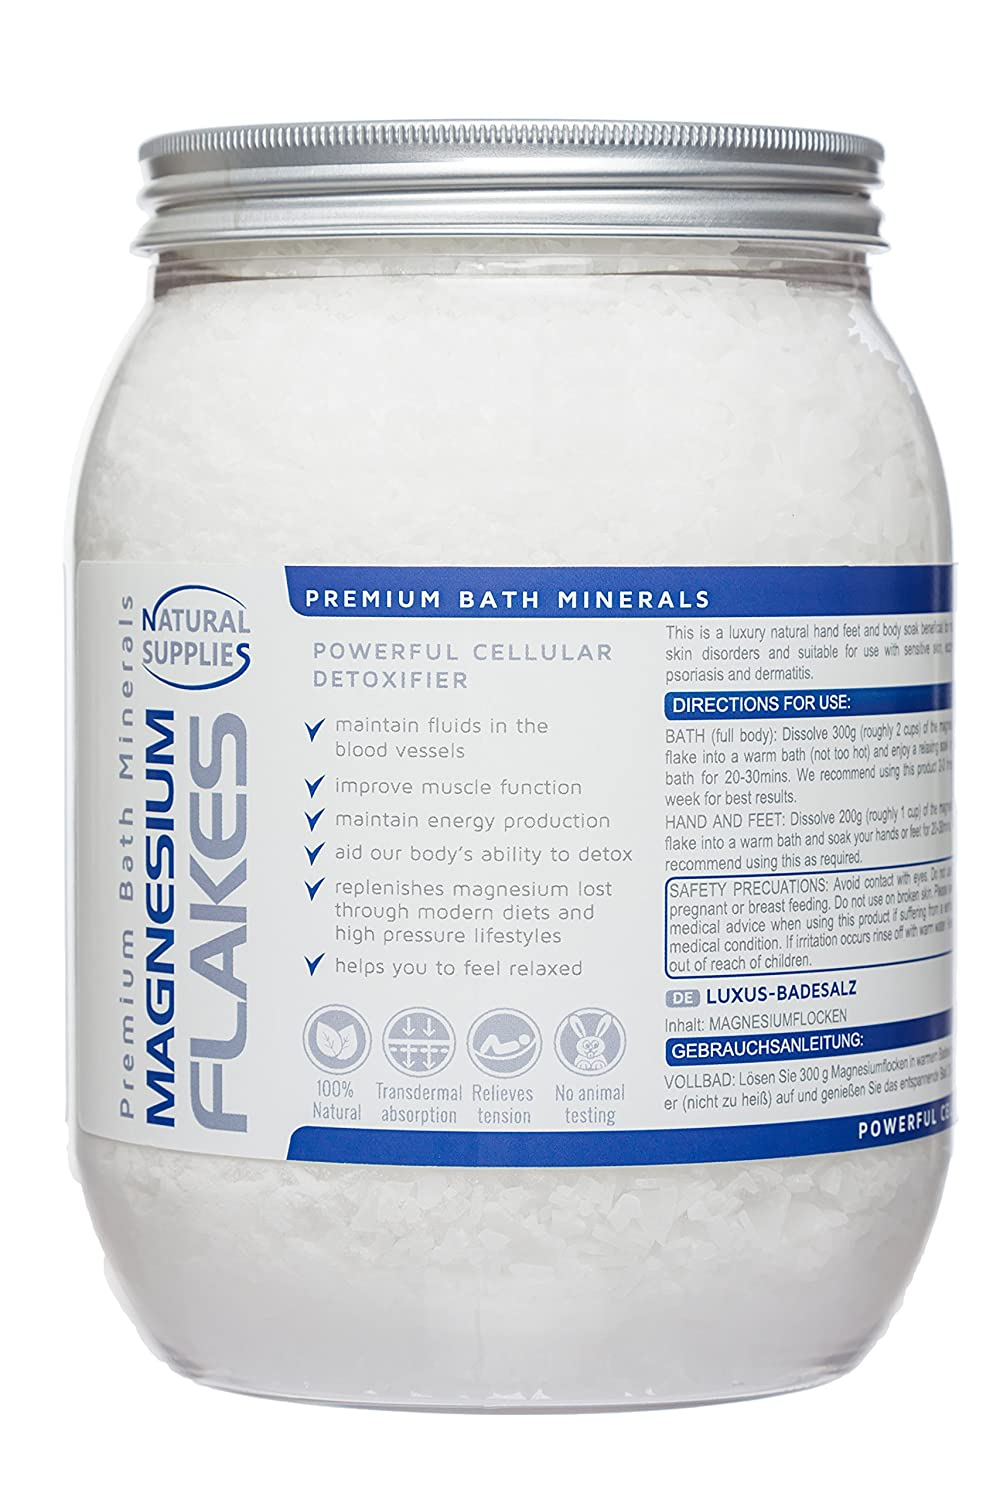 Magnesium Flakes 1.2kg, Premium Bath Salts Relaxing Therapy - (Magnesium Chloride Hexahydrate) - Resealable: Amazon.es: Belleza